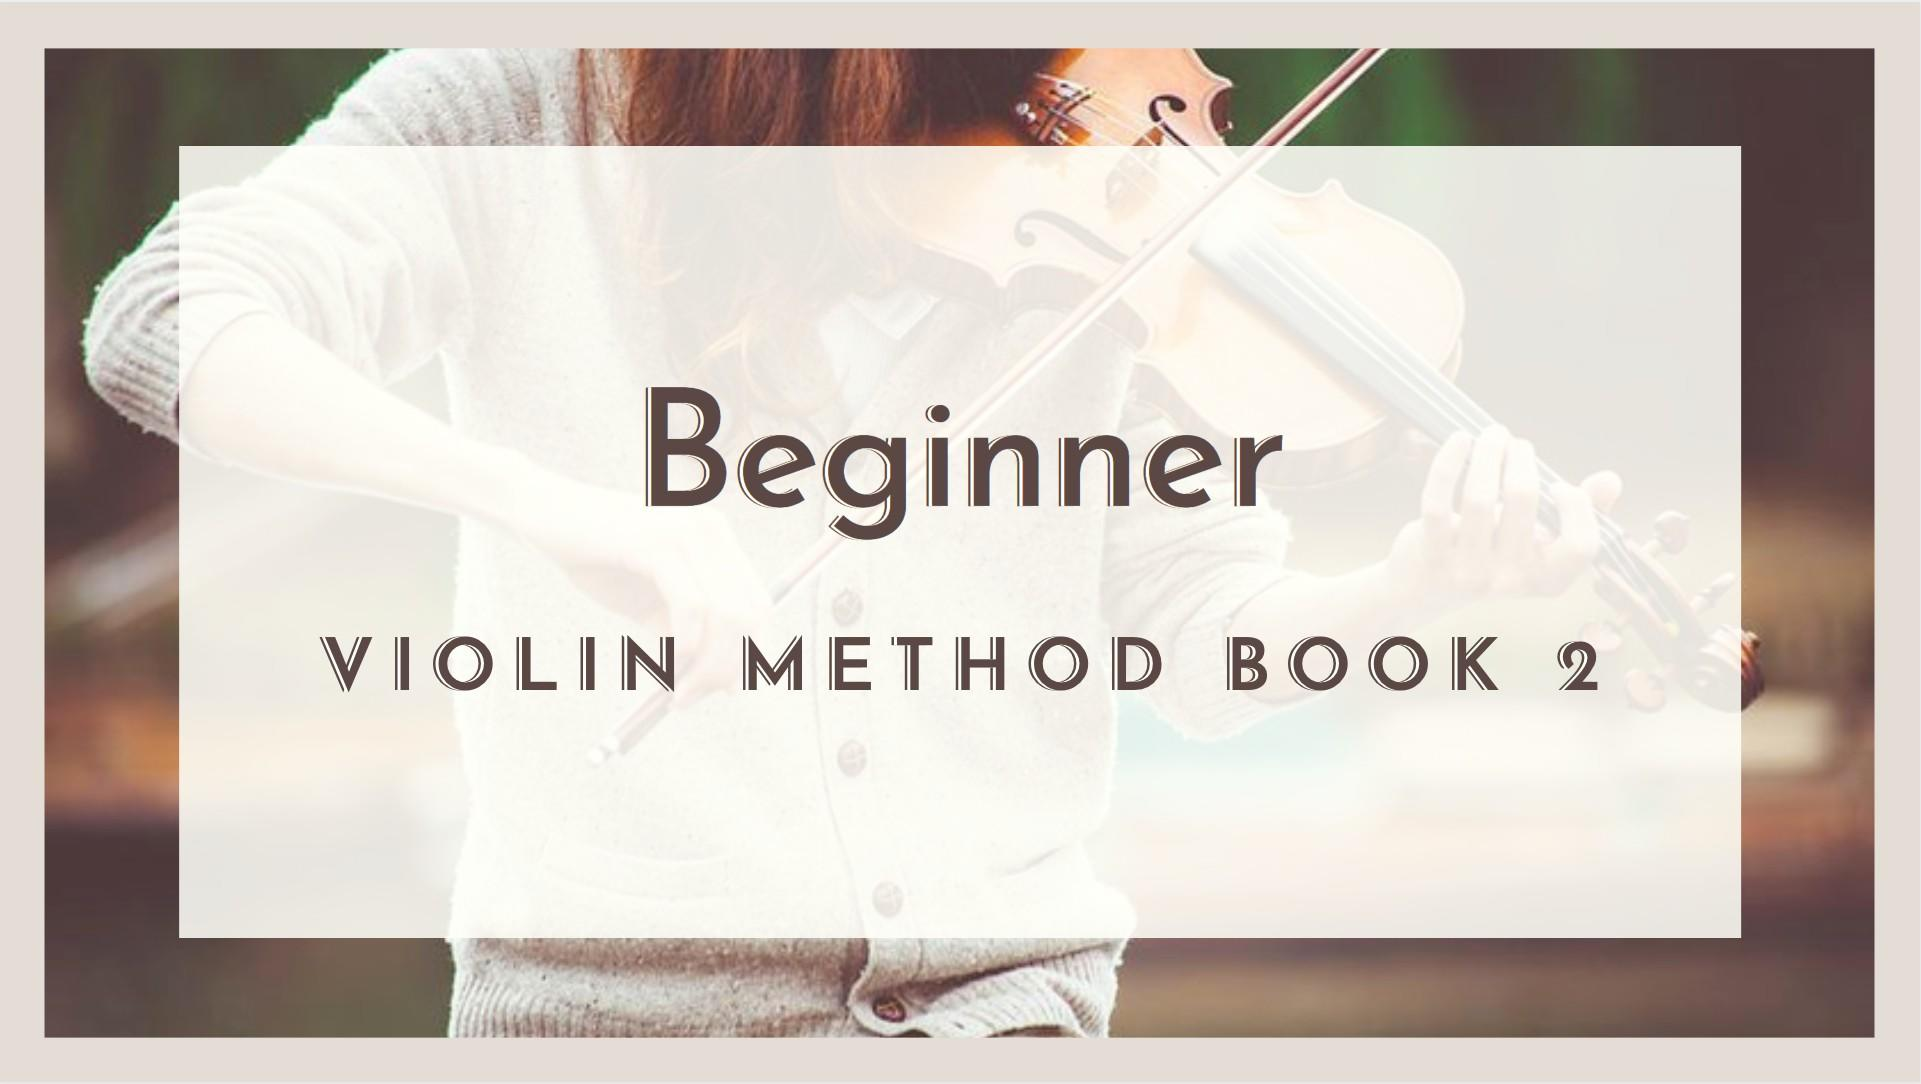 Beginner Violin Method Book 2